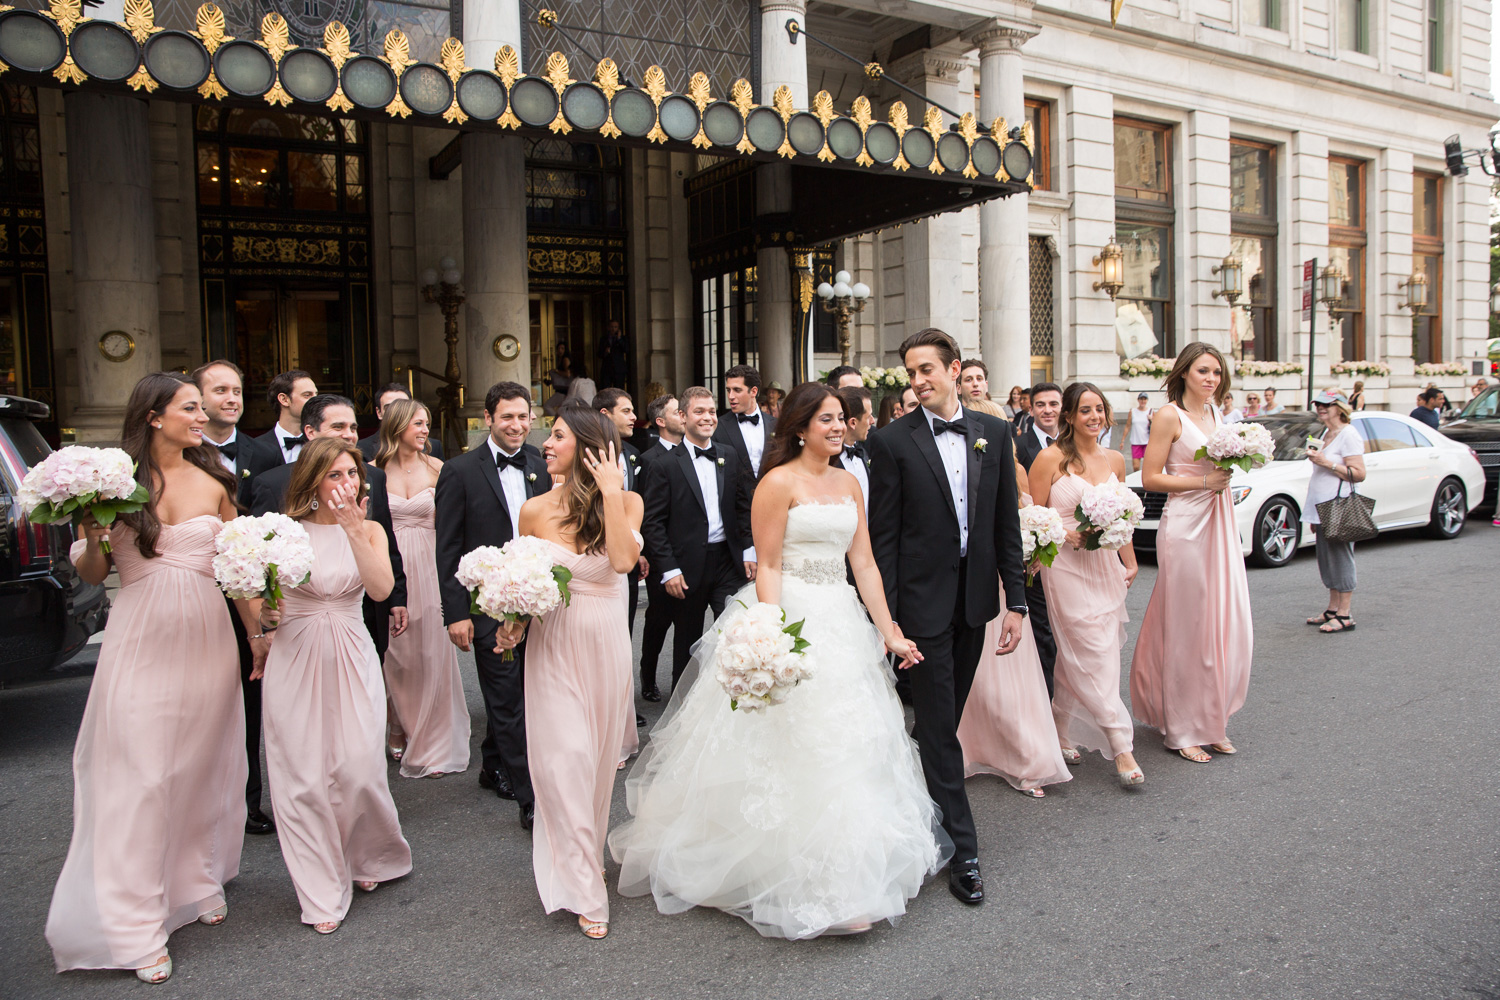 The Pros And Cons Of Having A Bridal Party For Your